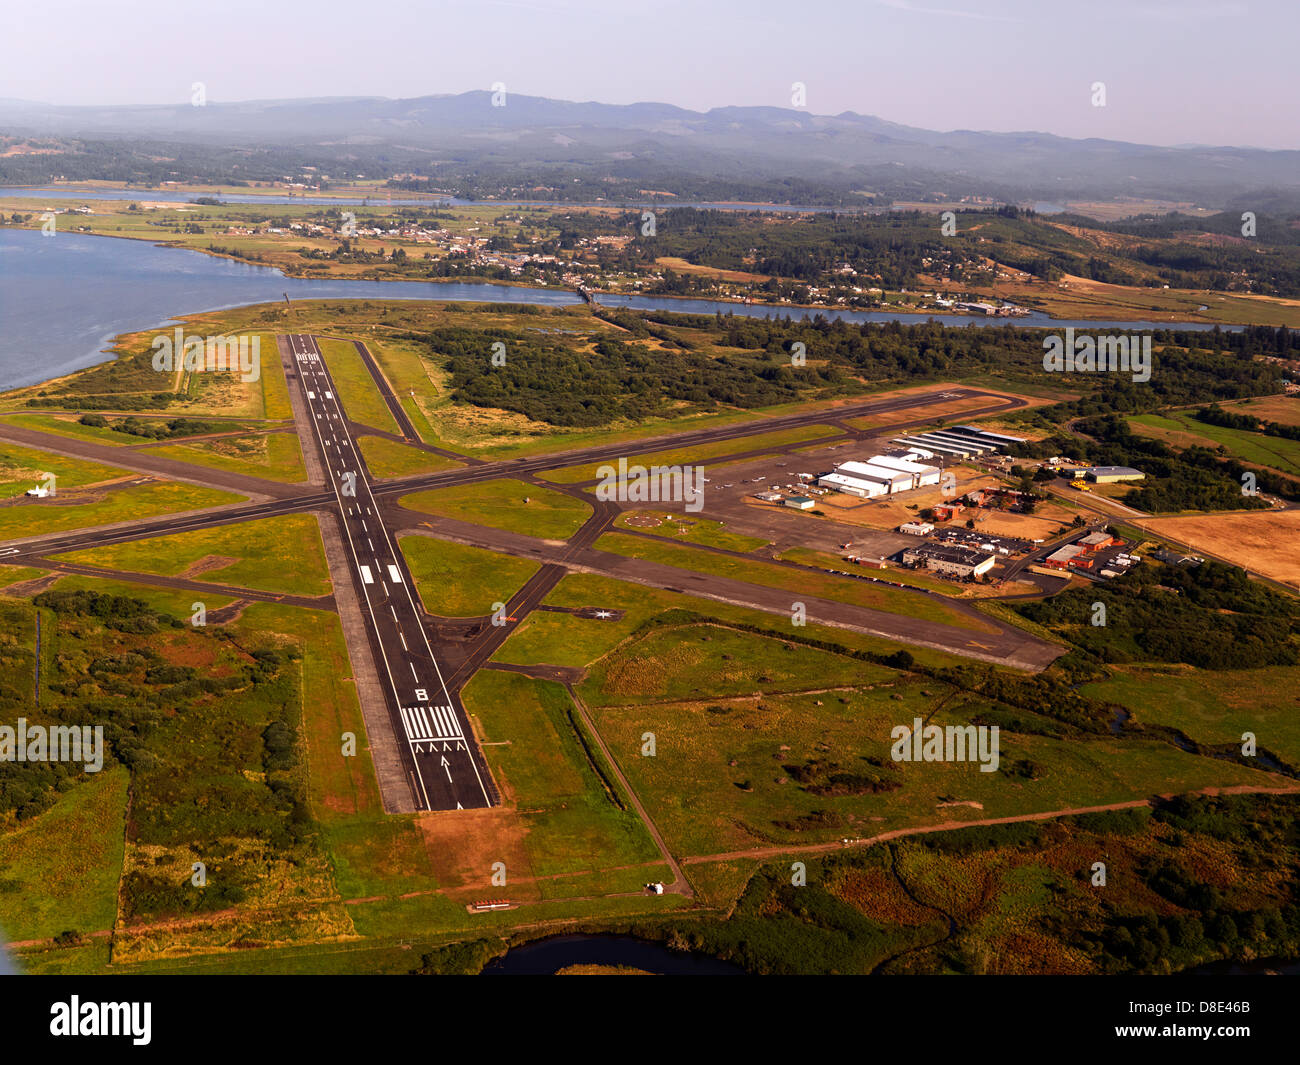 Astoria Airport in Oregon, an aerial photo of the run way